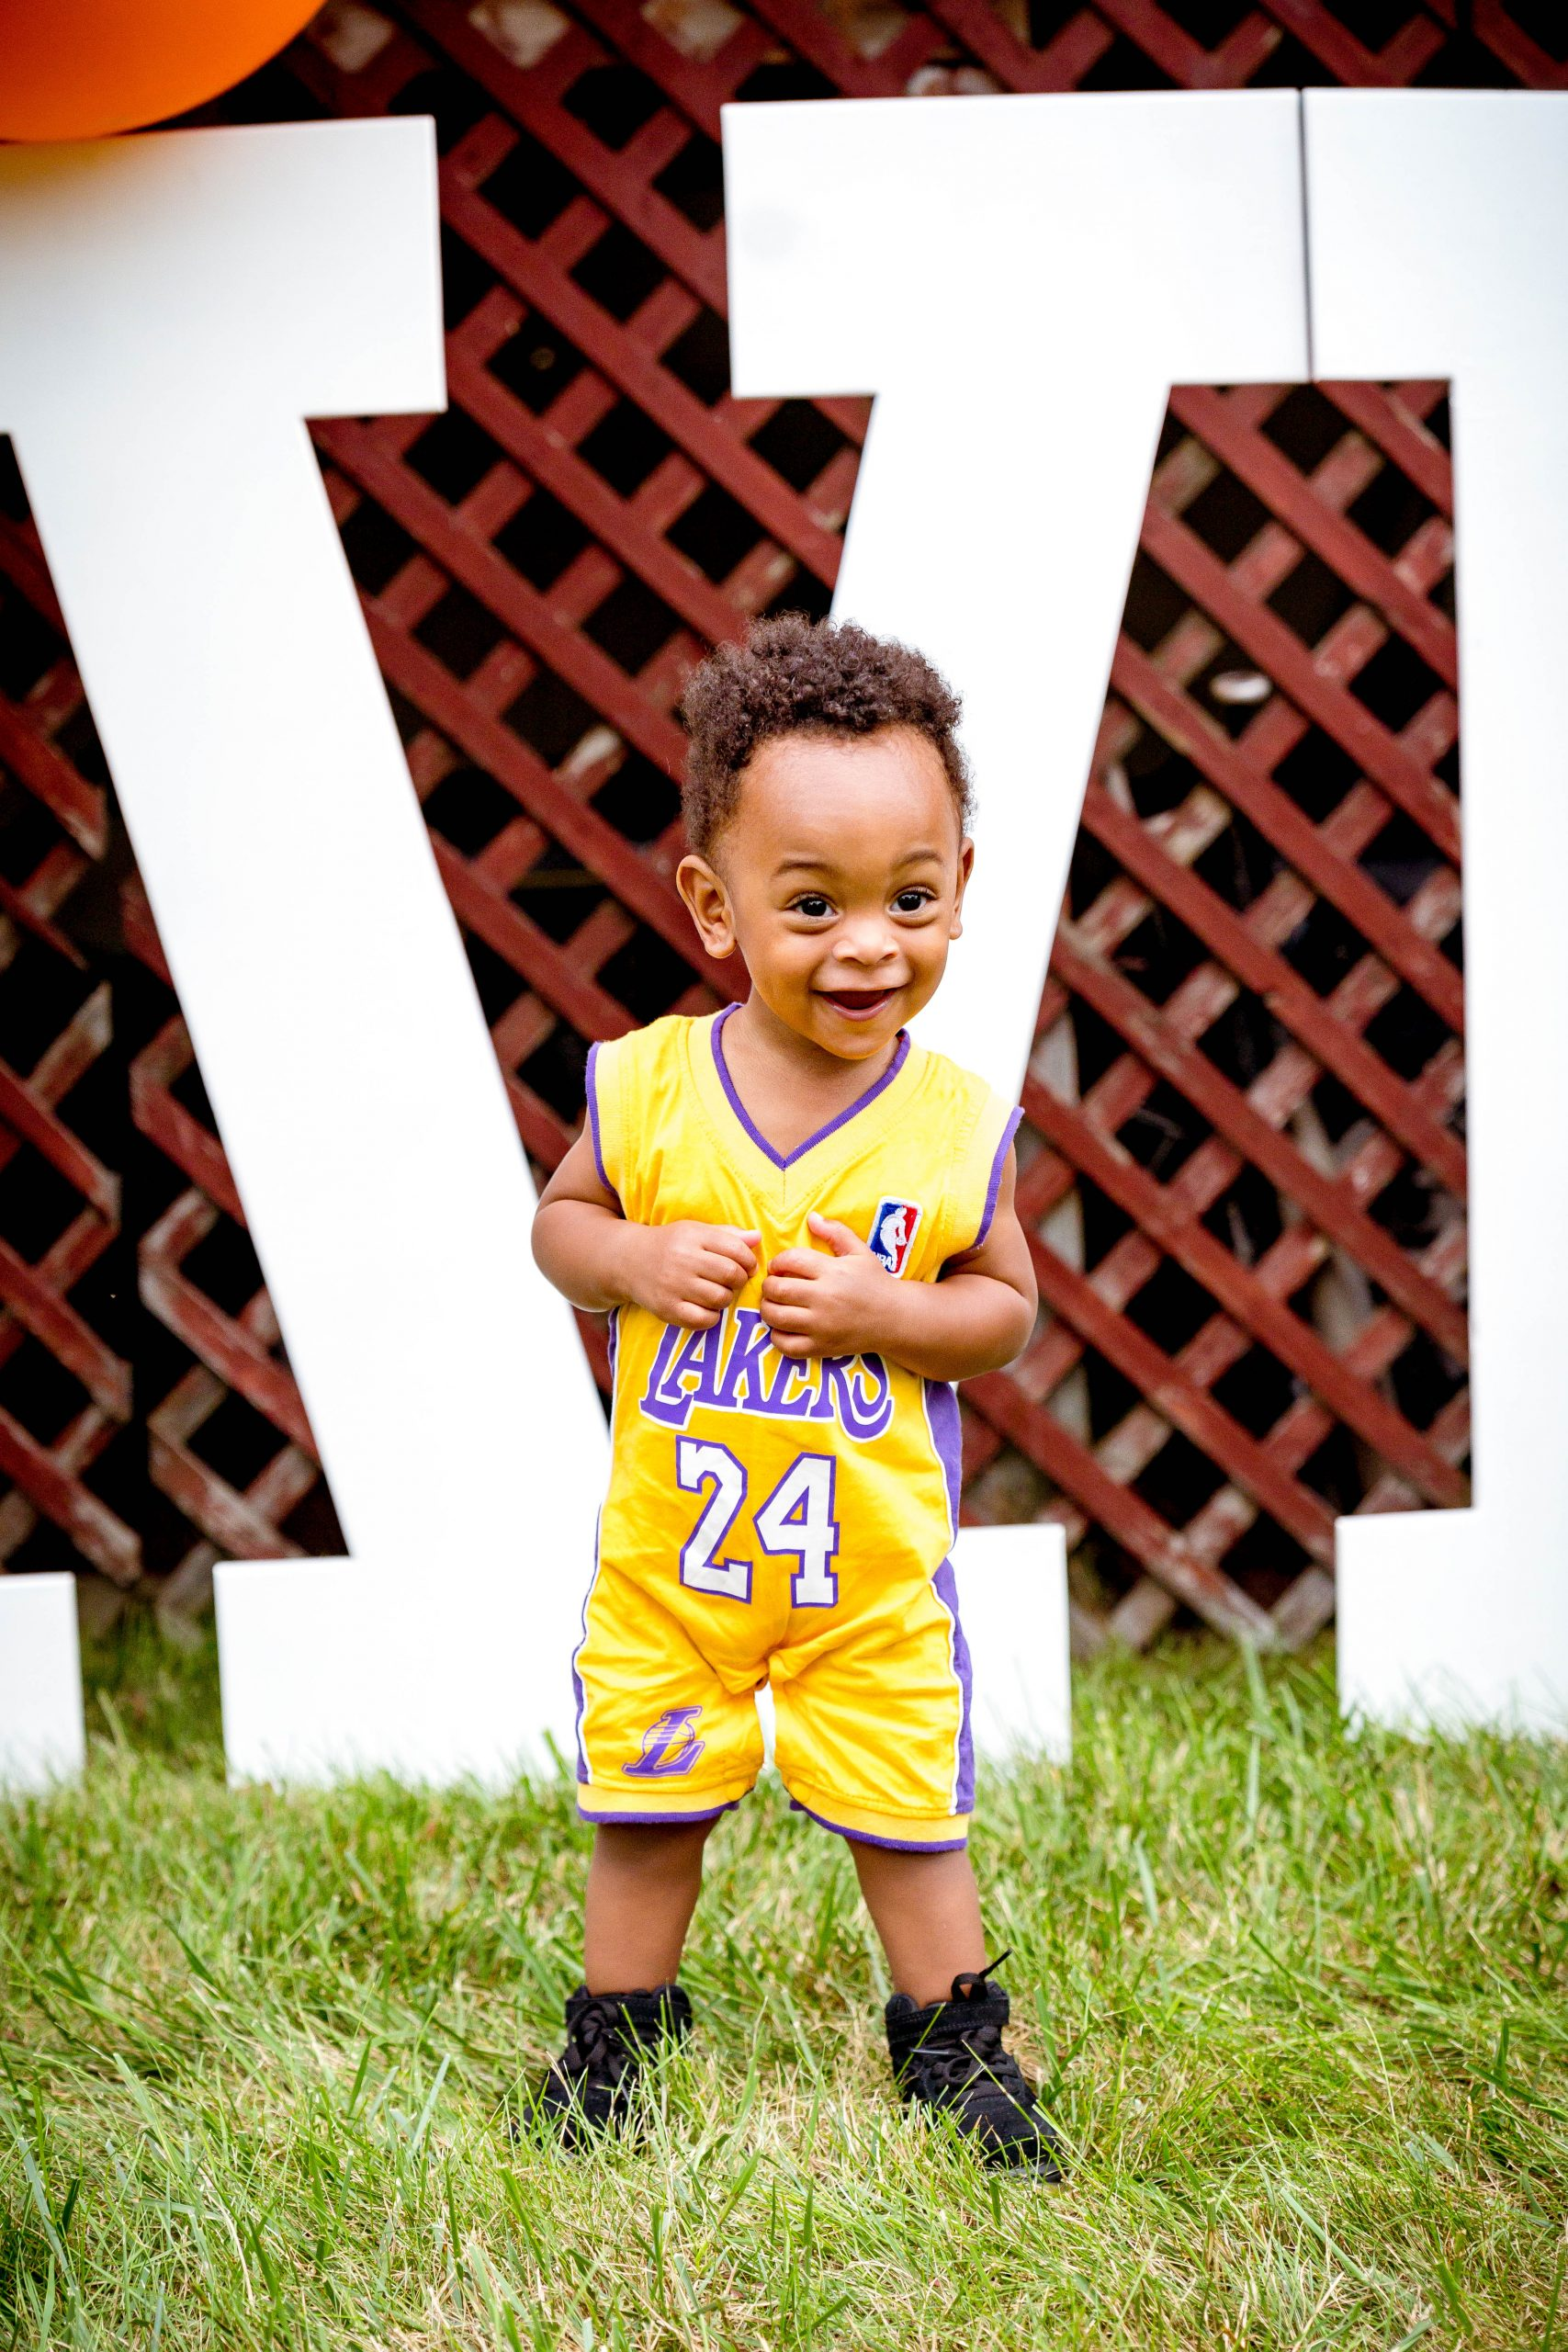 livinglesh lakers outfit baby